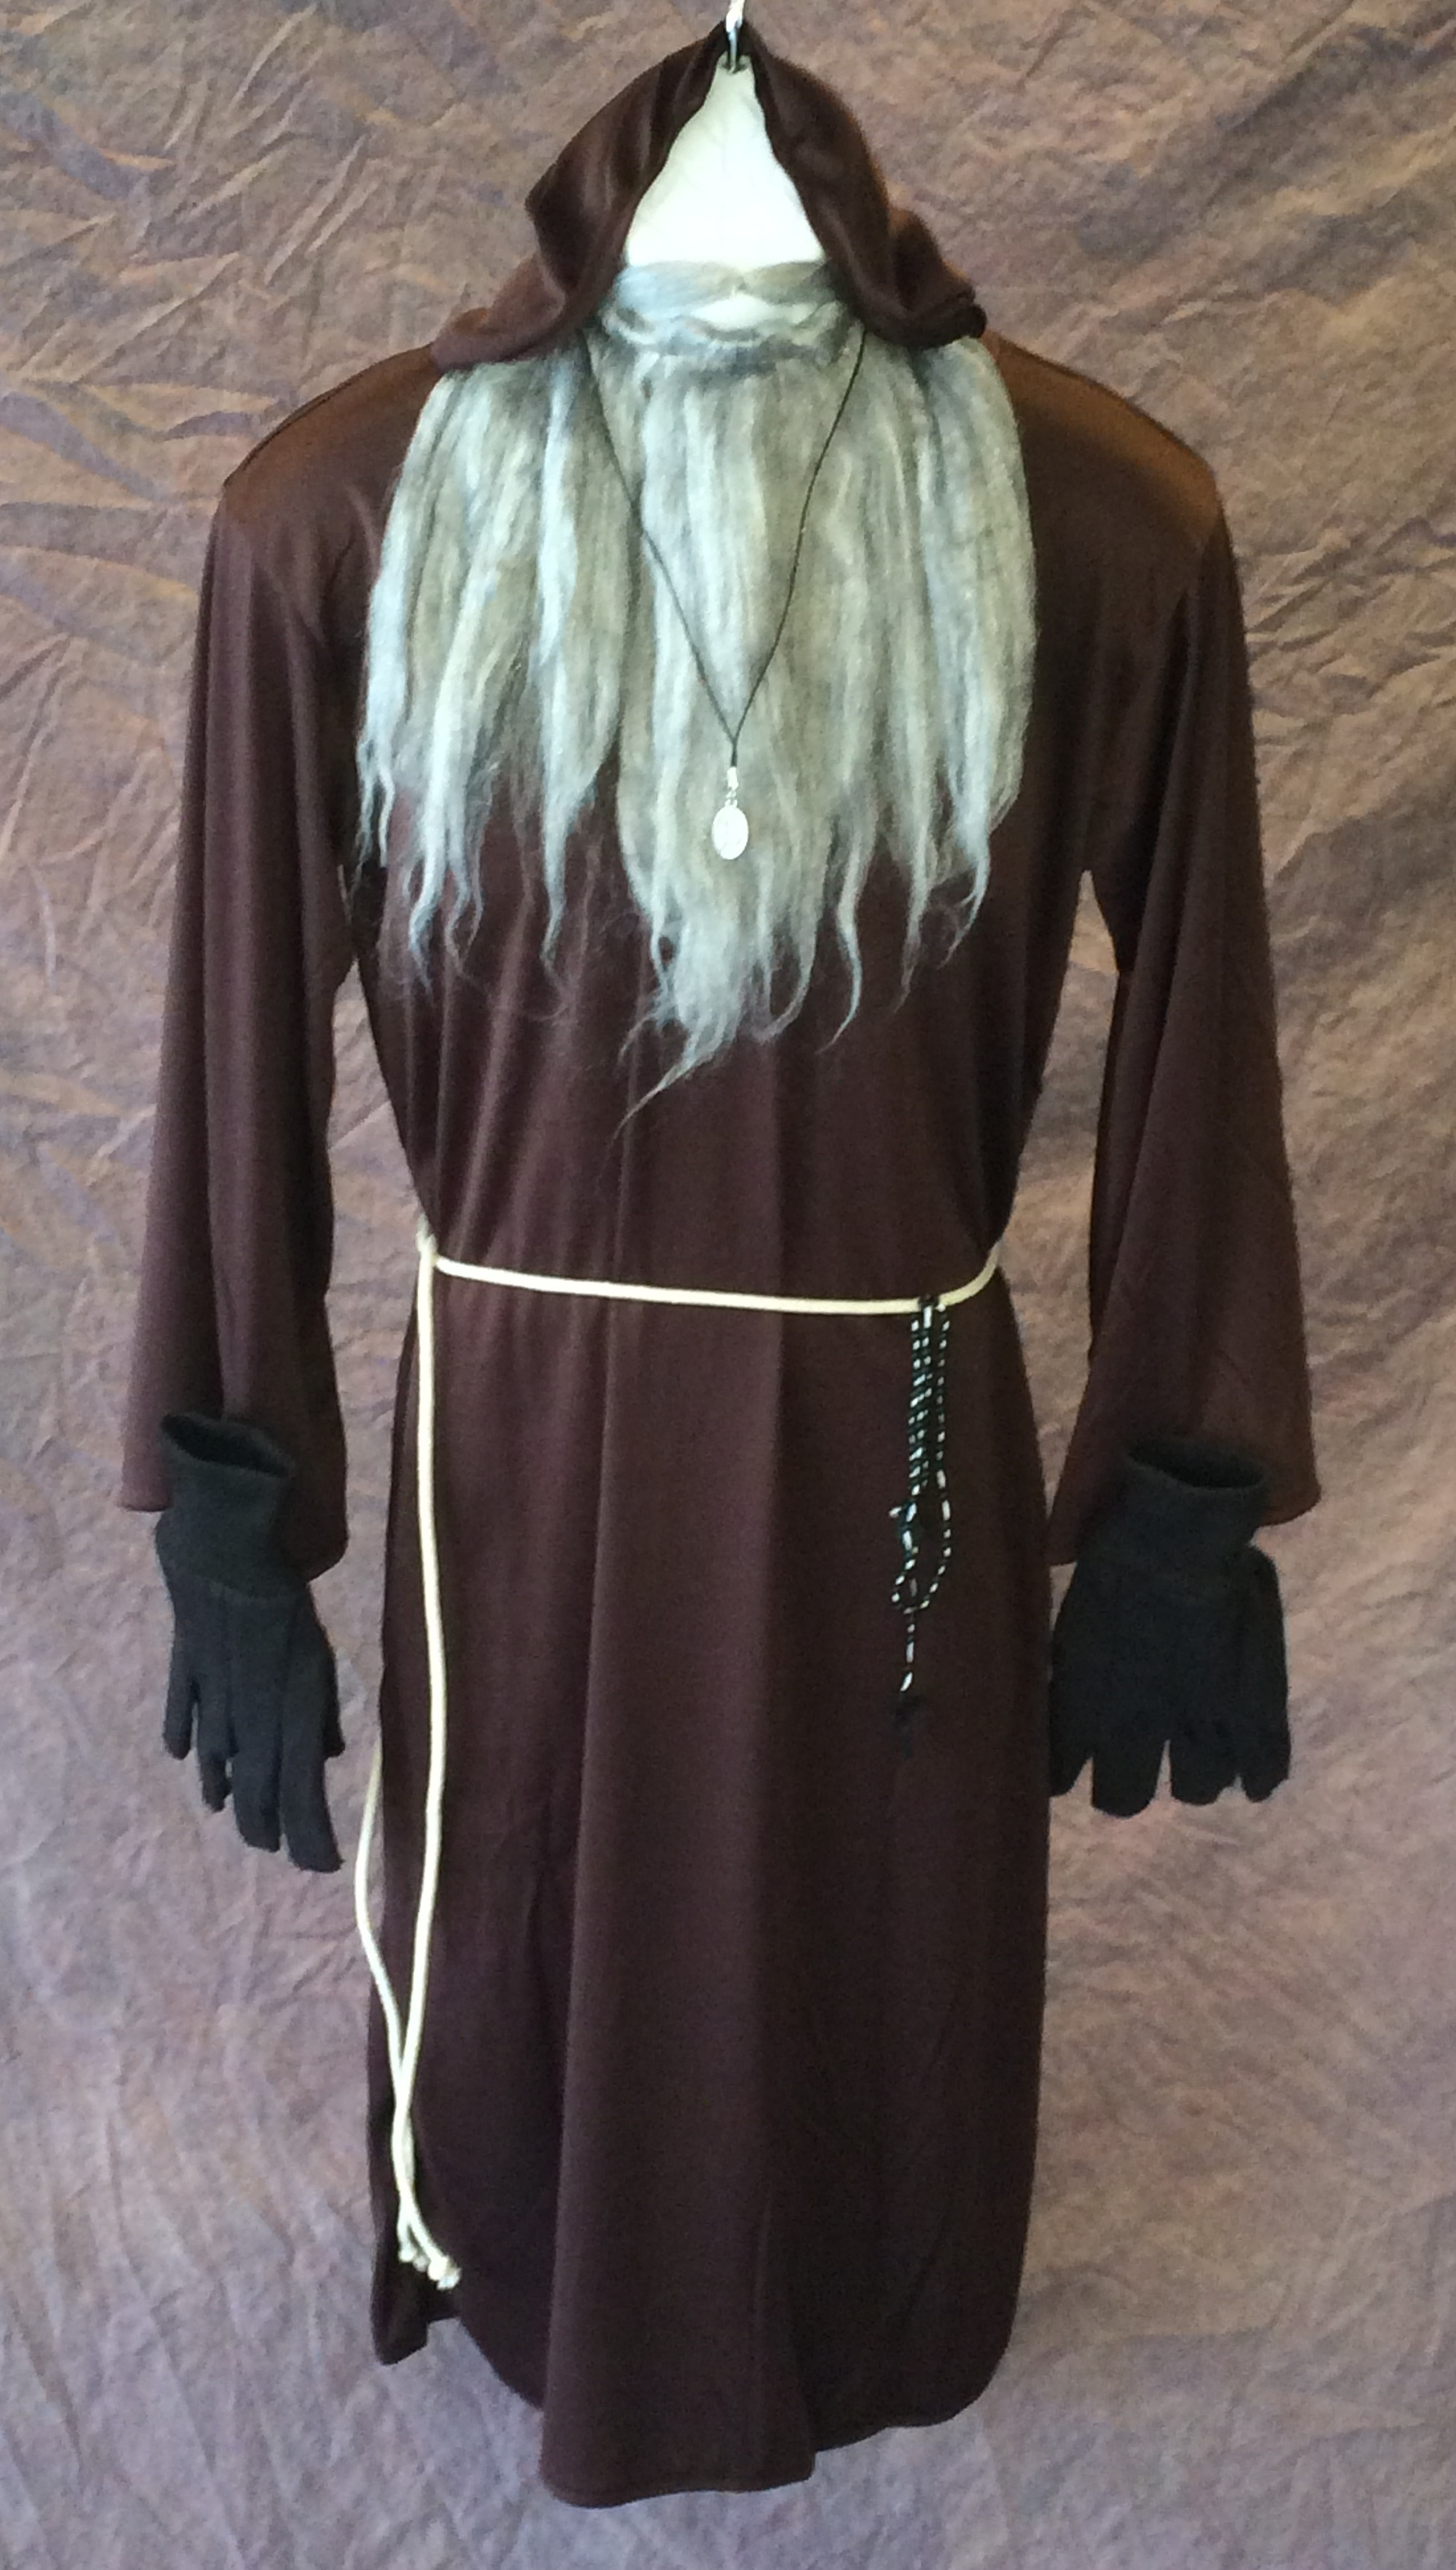 st. padre pio childrens costume - the rosary book and gift shoppe